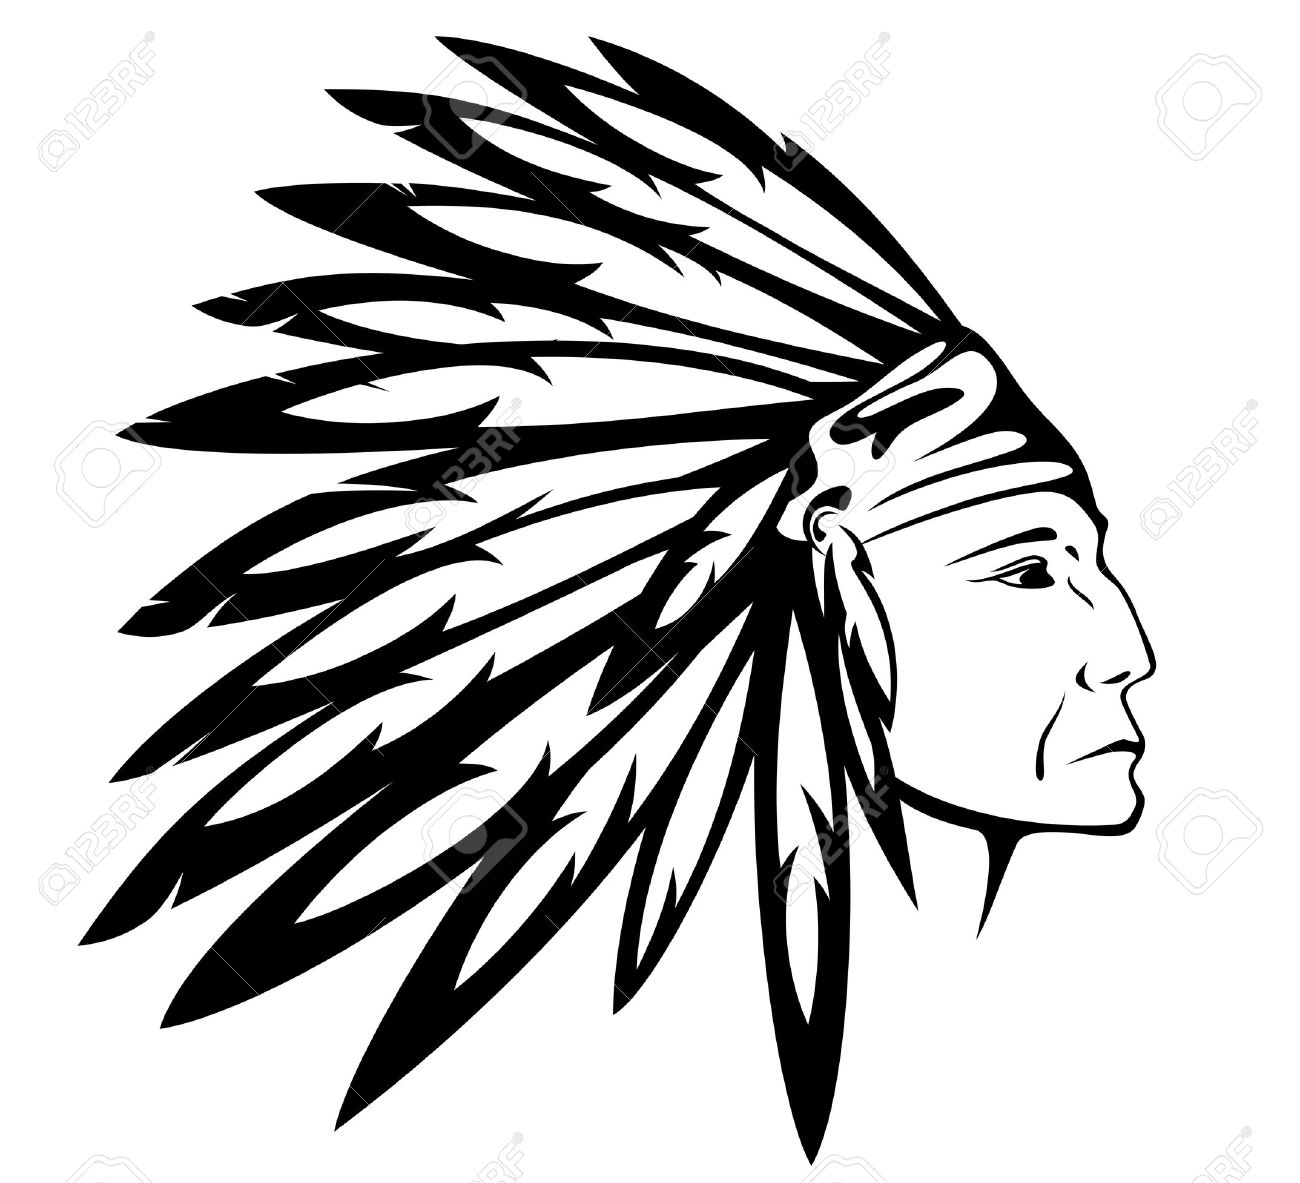 red indian chief wearing traditional headdress royalty free cliparts rh 123rf com indian headdress clipart black and white